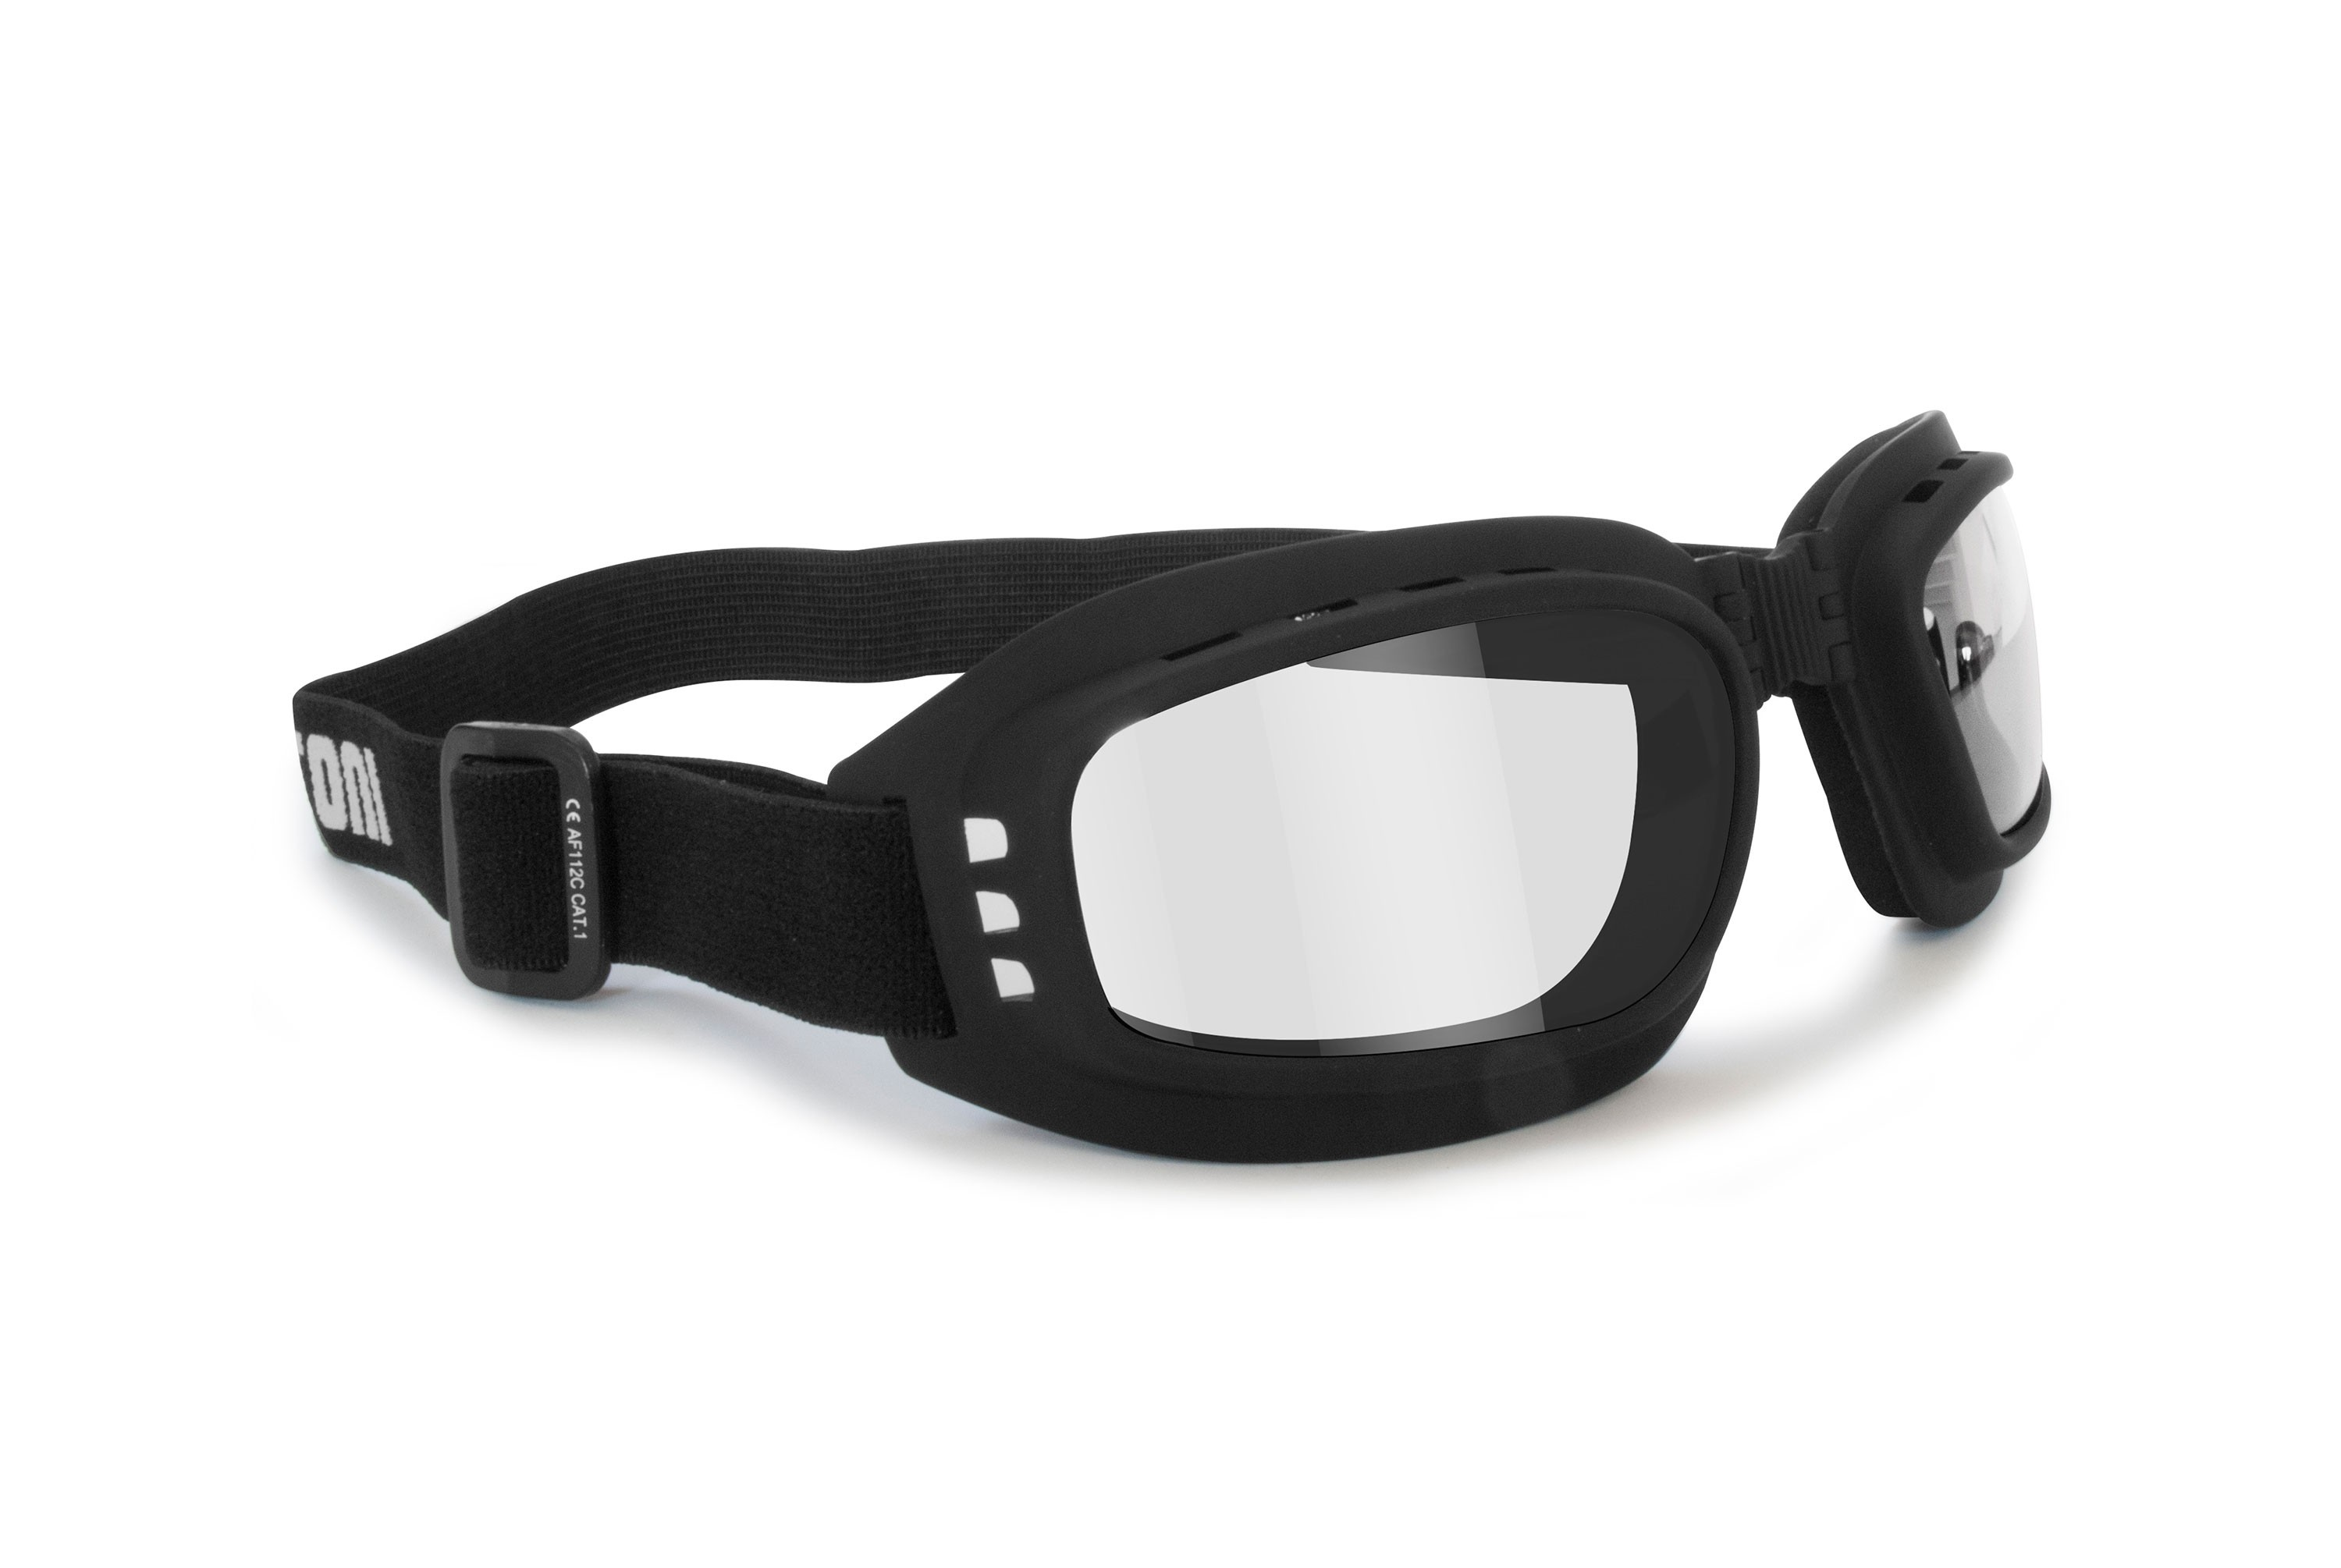 Motorcycle Goggles Riding Padded Glasses Photochromic Antifog - Adjustable Strap - Ventilated - Bertoni Italy F112A Motorbike Goggles